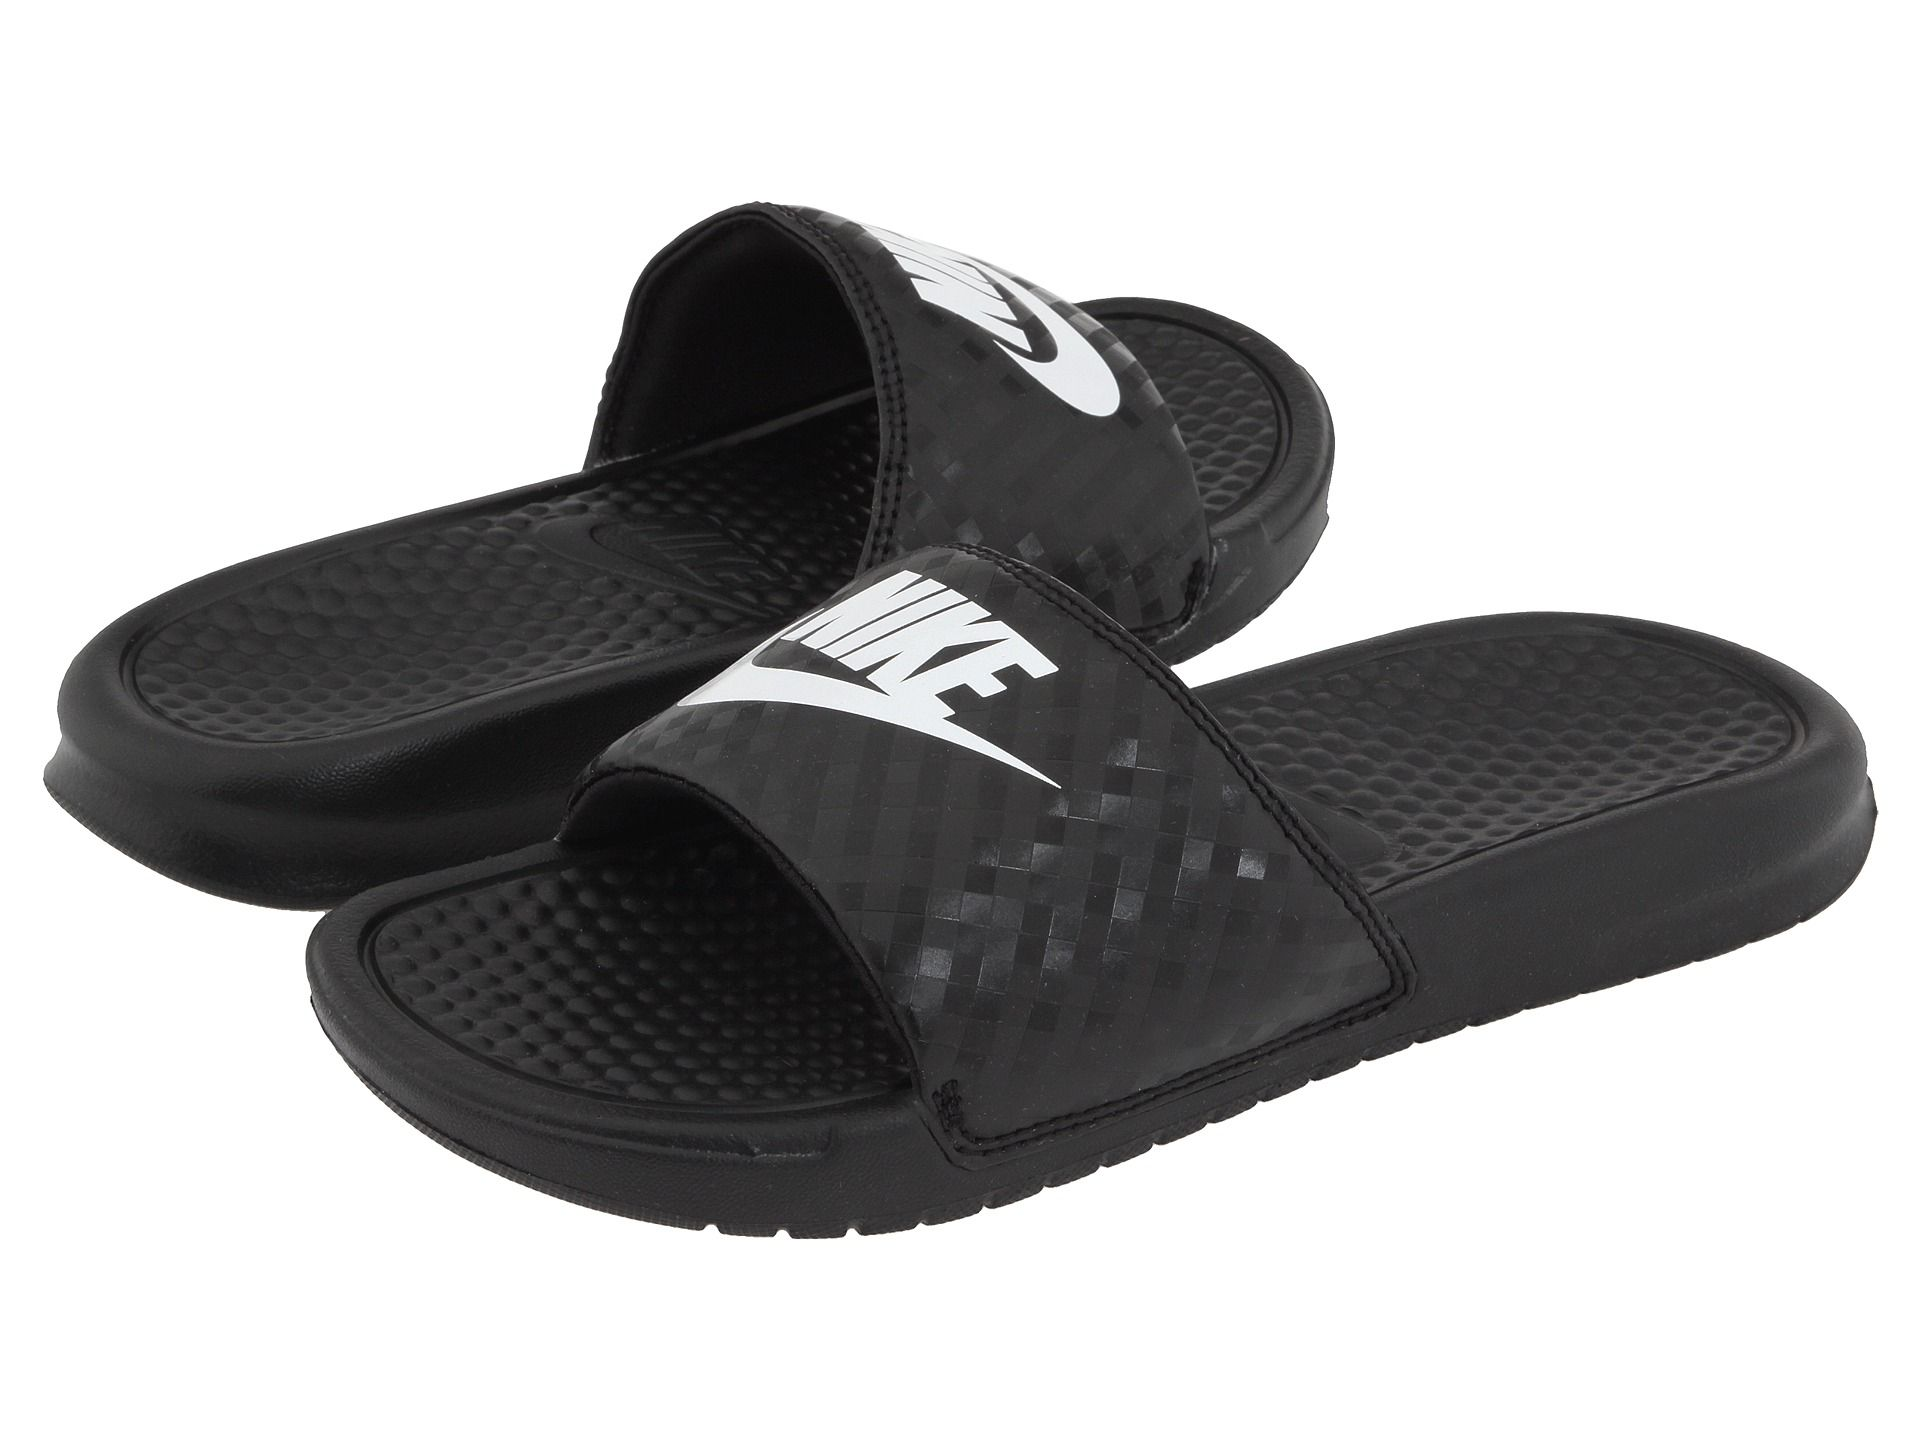 online store 6bc47 f39d5 nike slides - Google Search